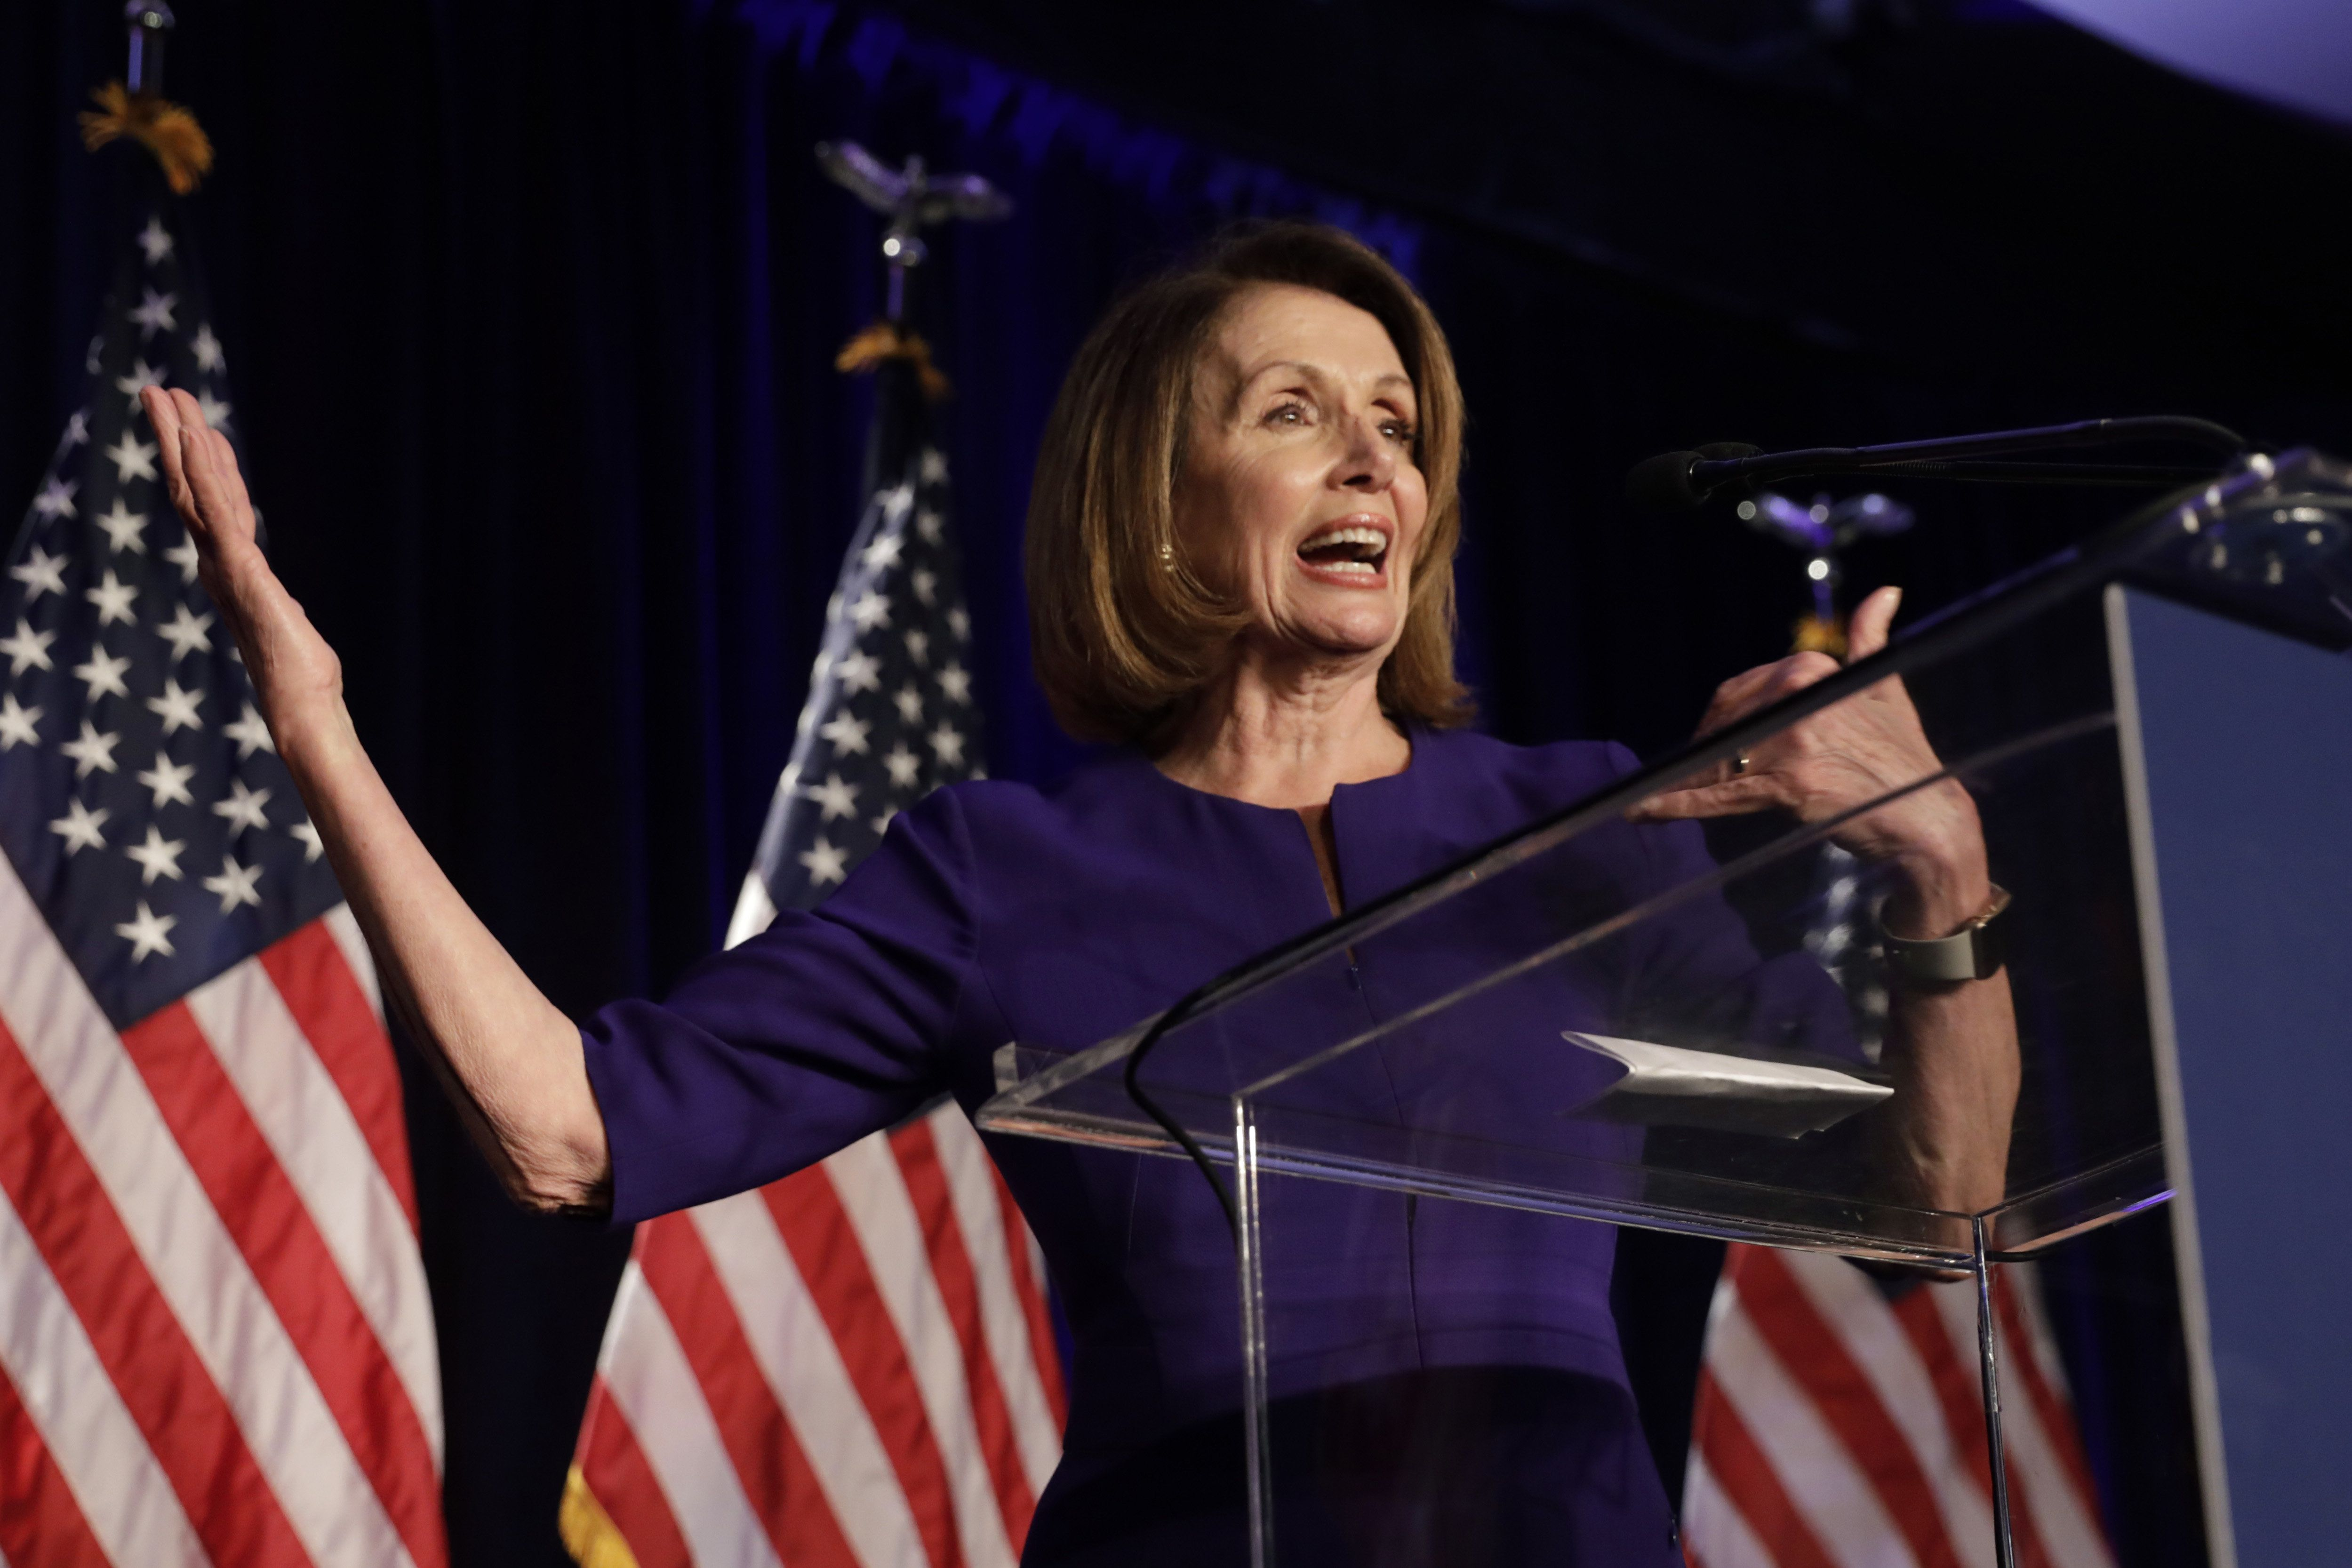 It's not clear if Nancy Pelosi will be speaker when Democrats take control of the House in January.